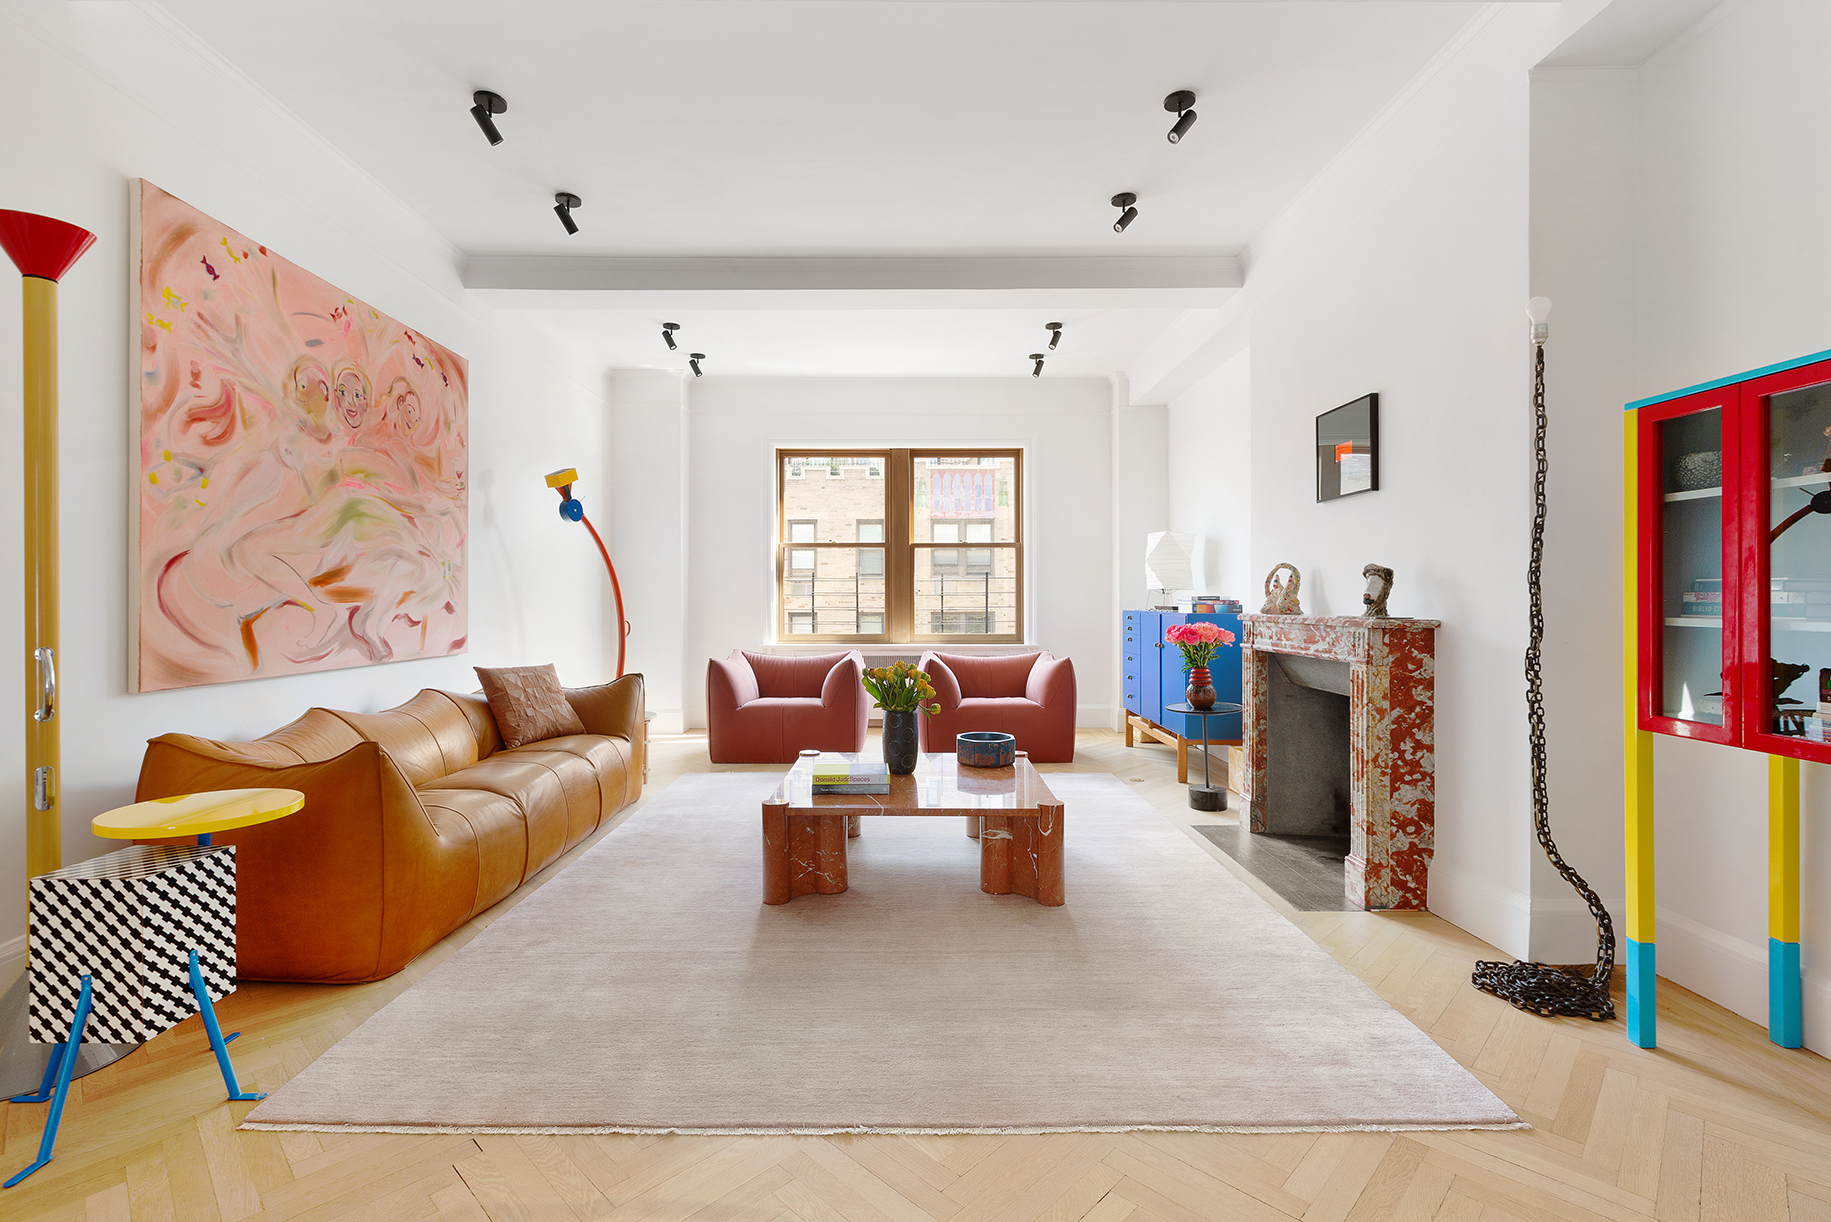 primary photo for 14 East 90th Street 12-C, New York, NY 10128, US